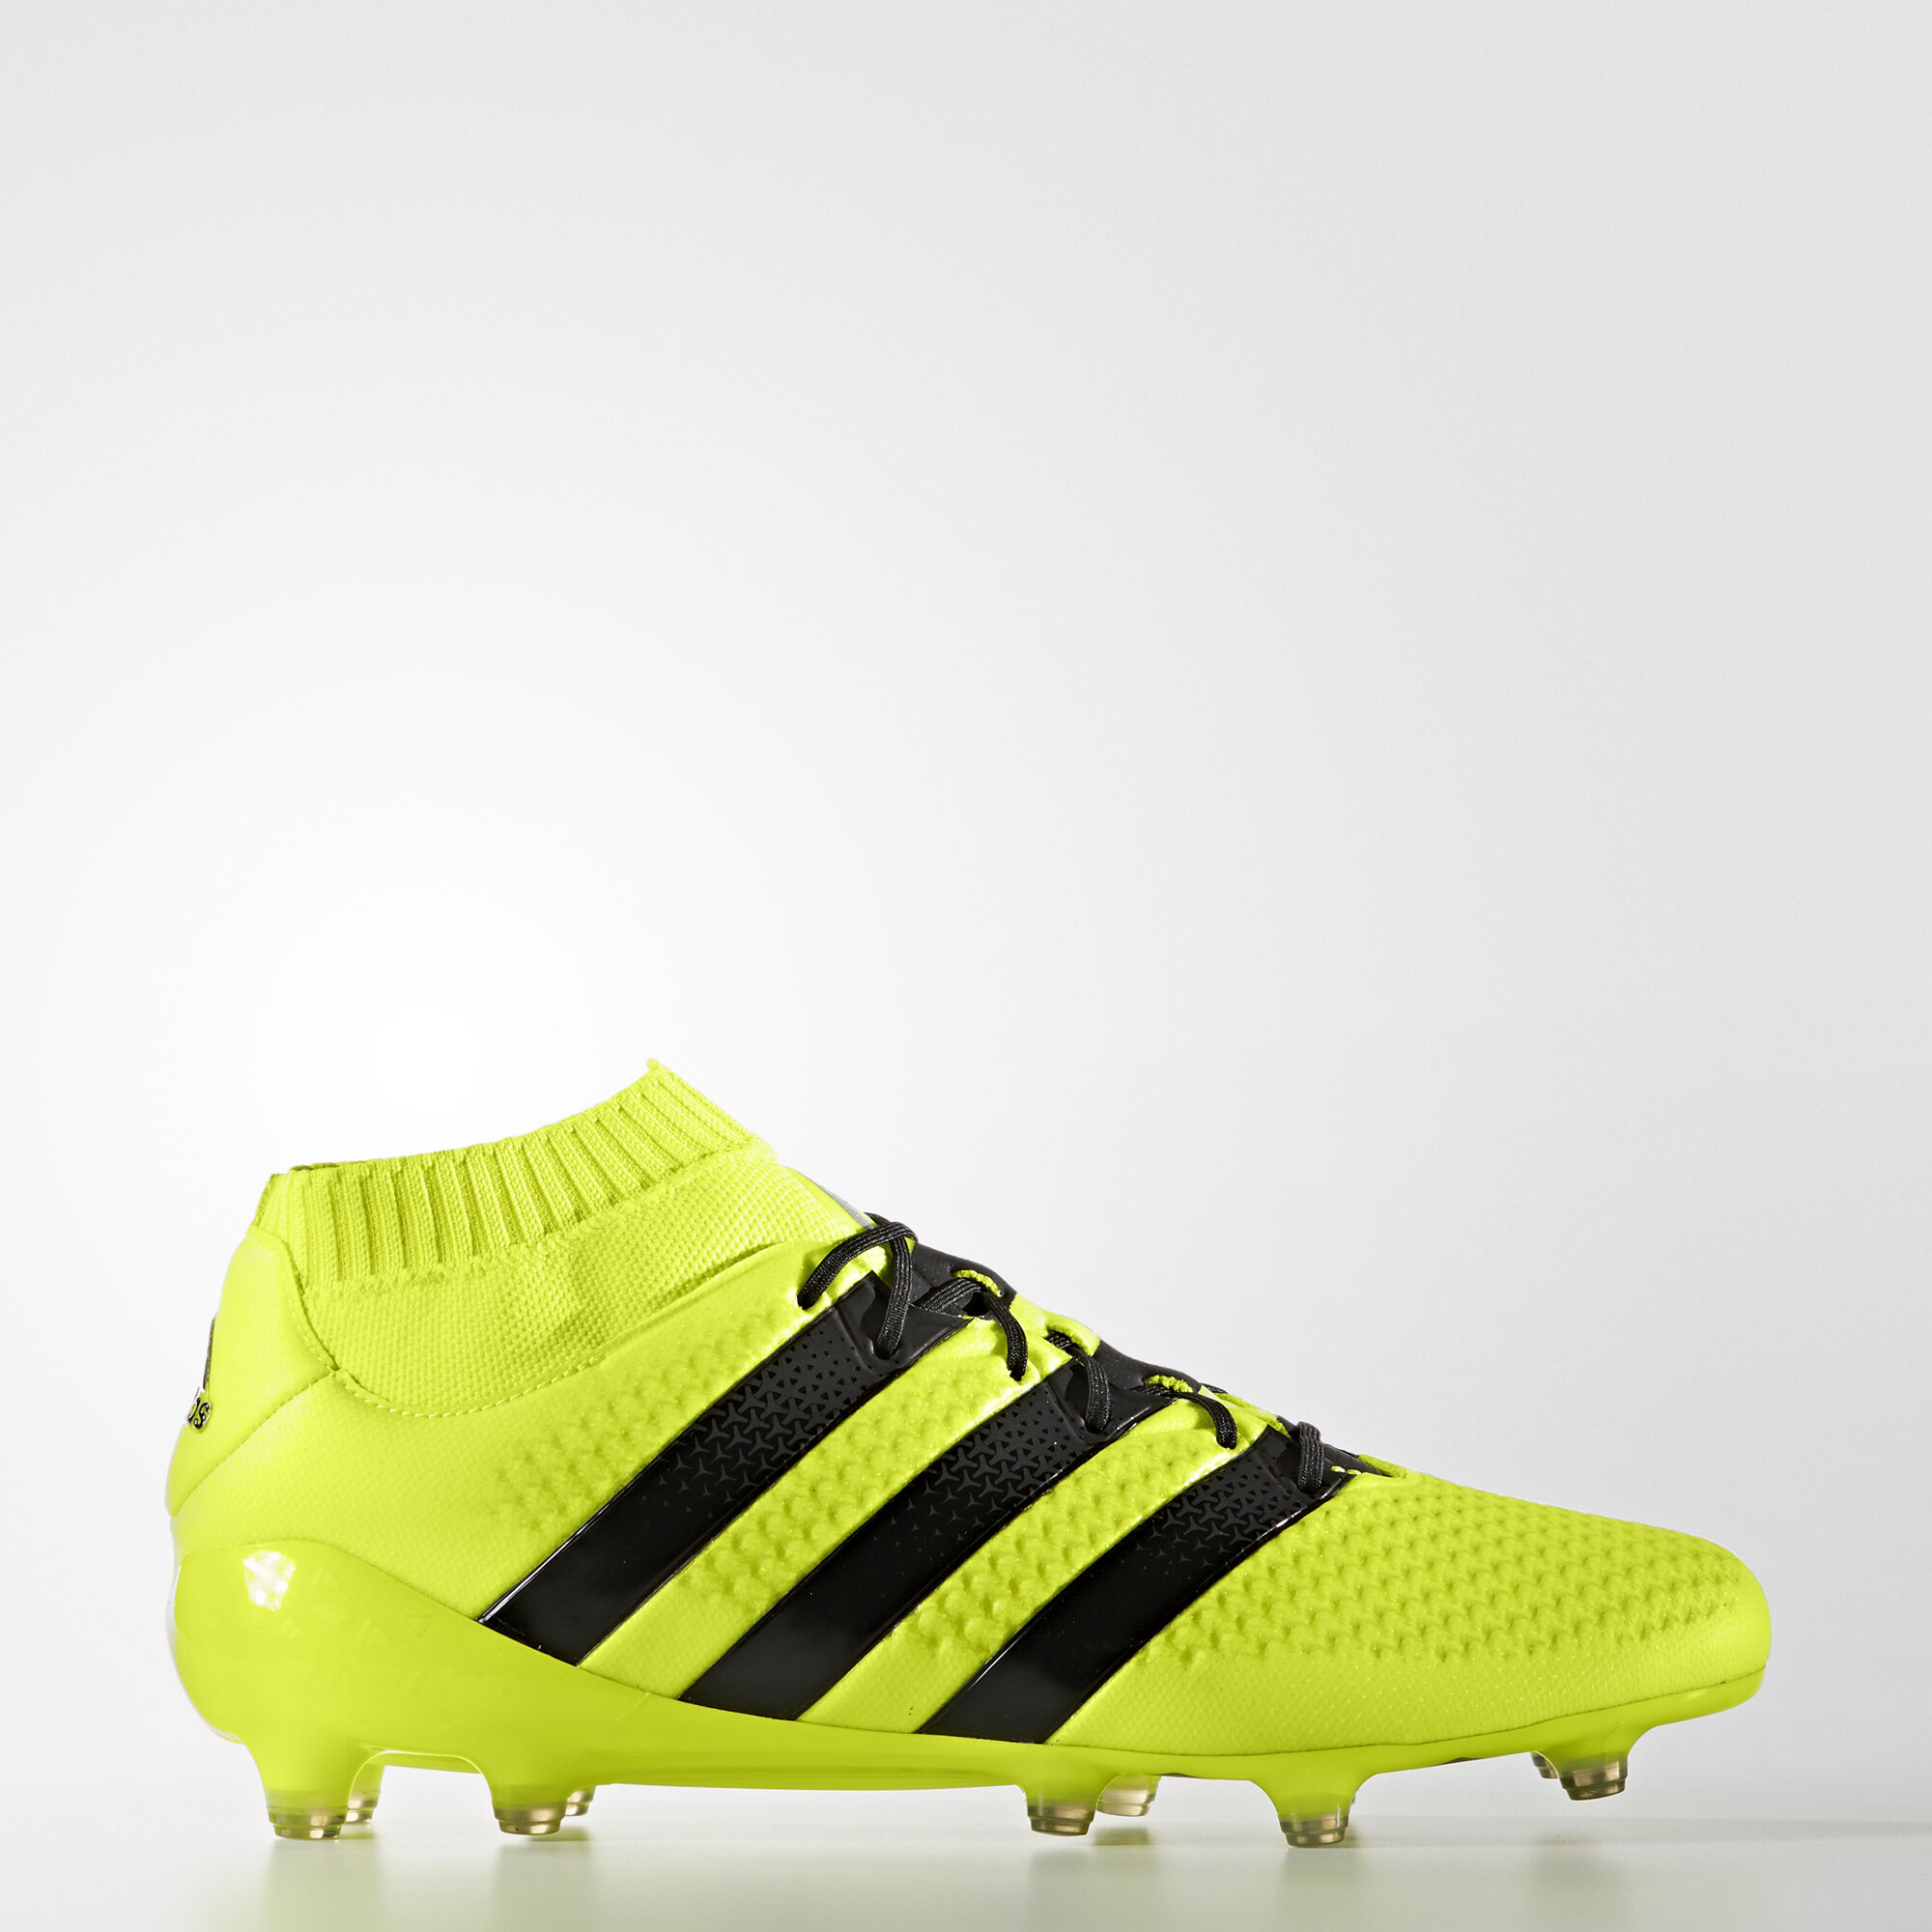 adidas ace 16 1 primeknit firm ground cleats yellow. Black Bedroom Furniture Sets. Home Design Ideas